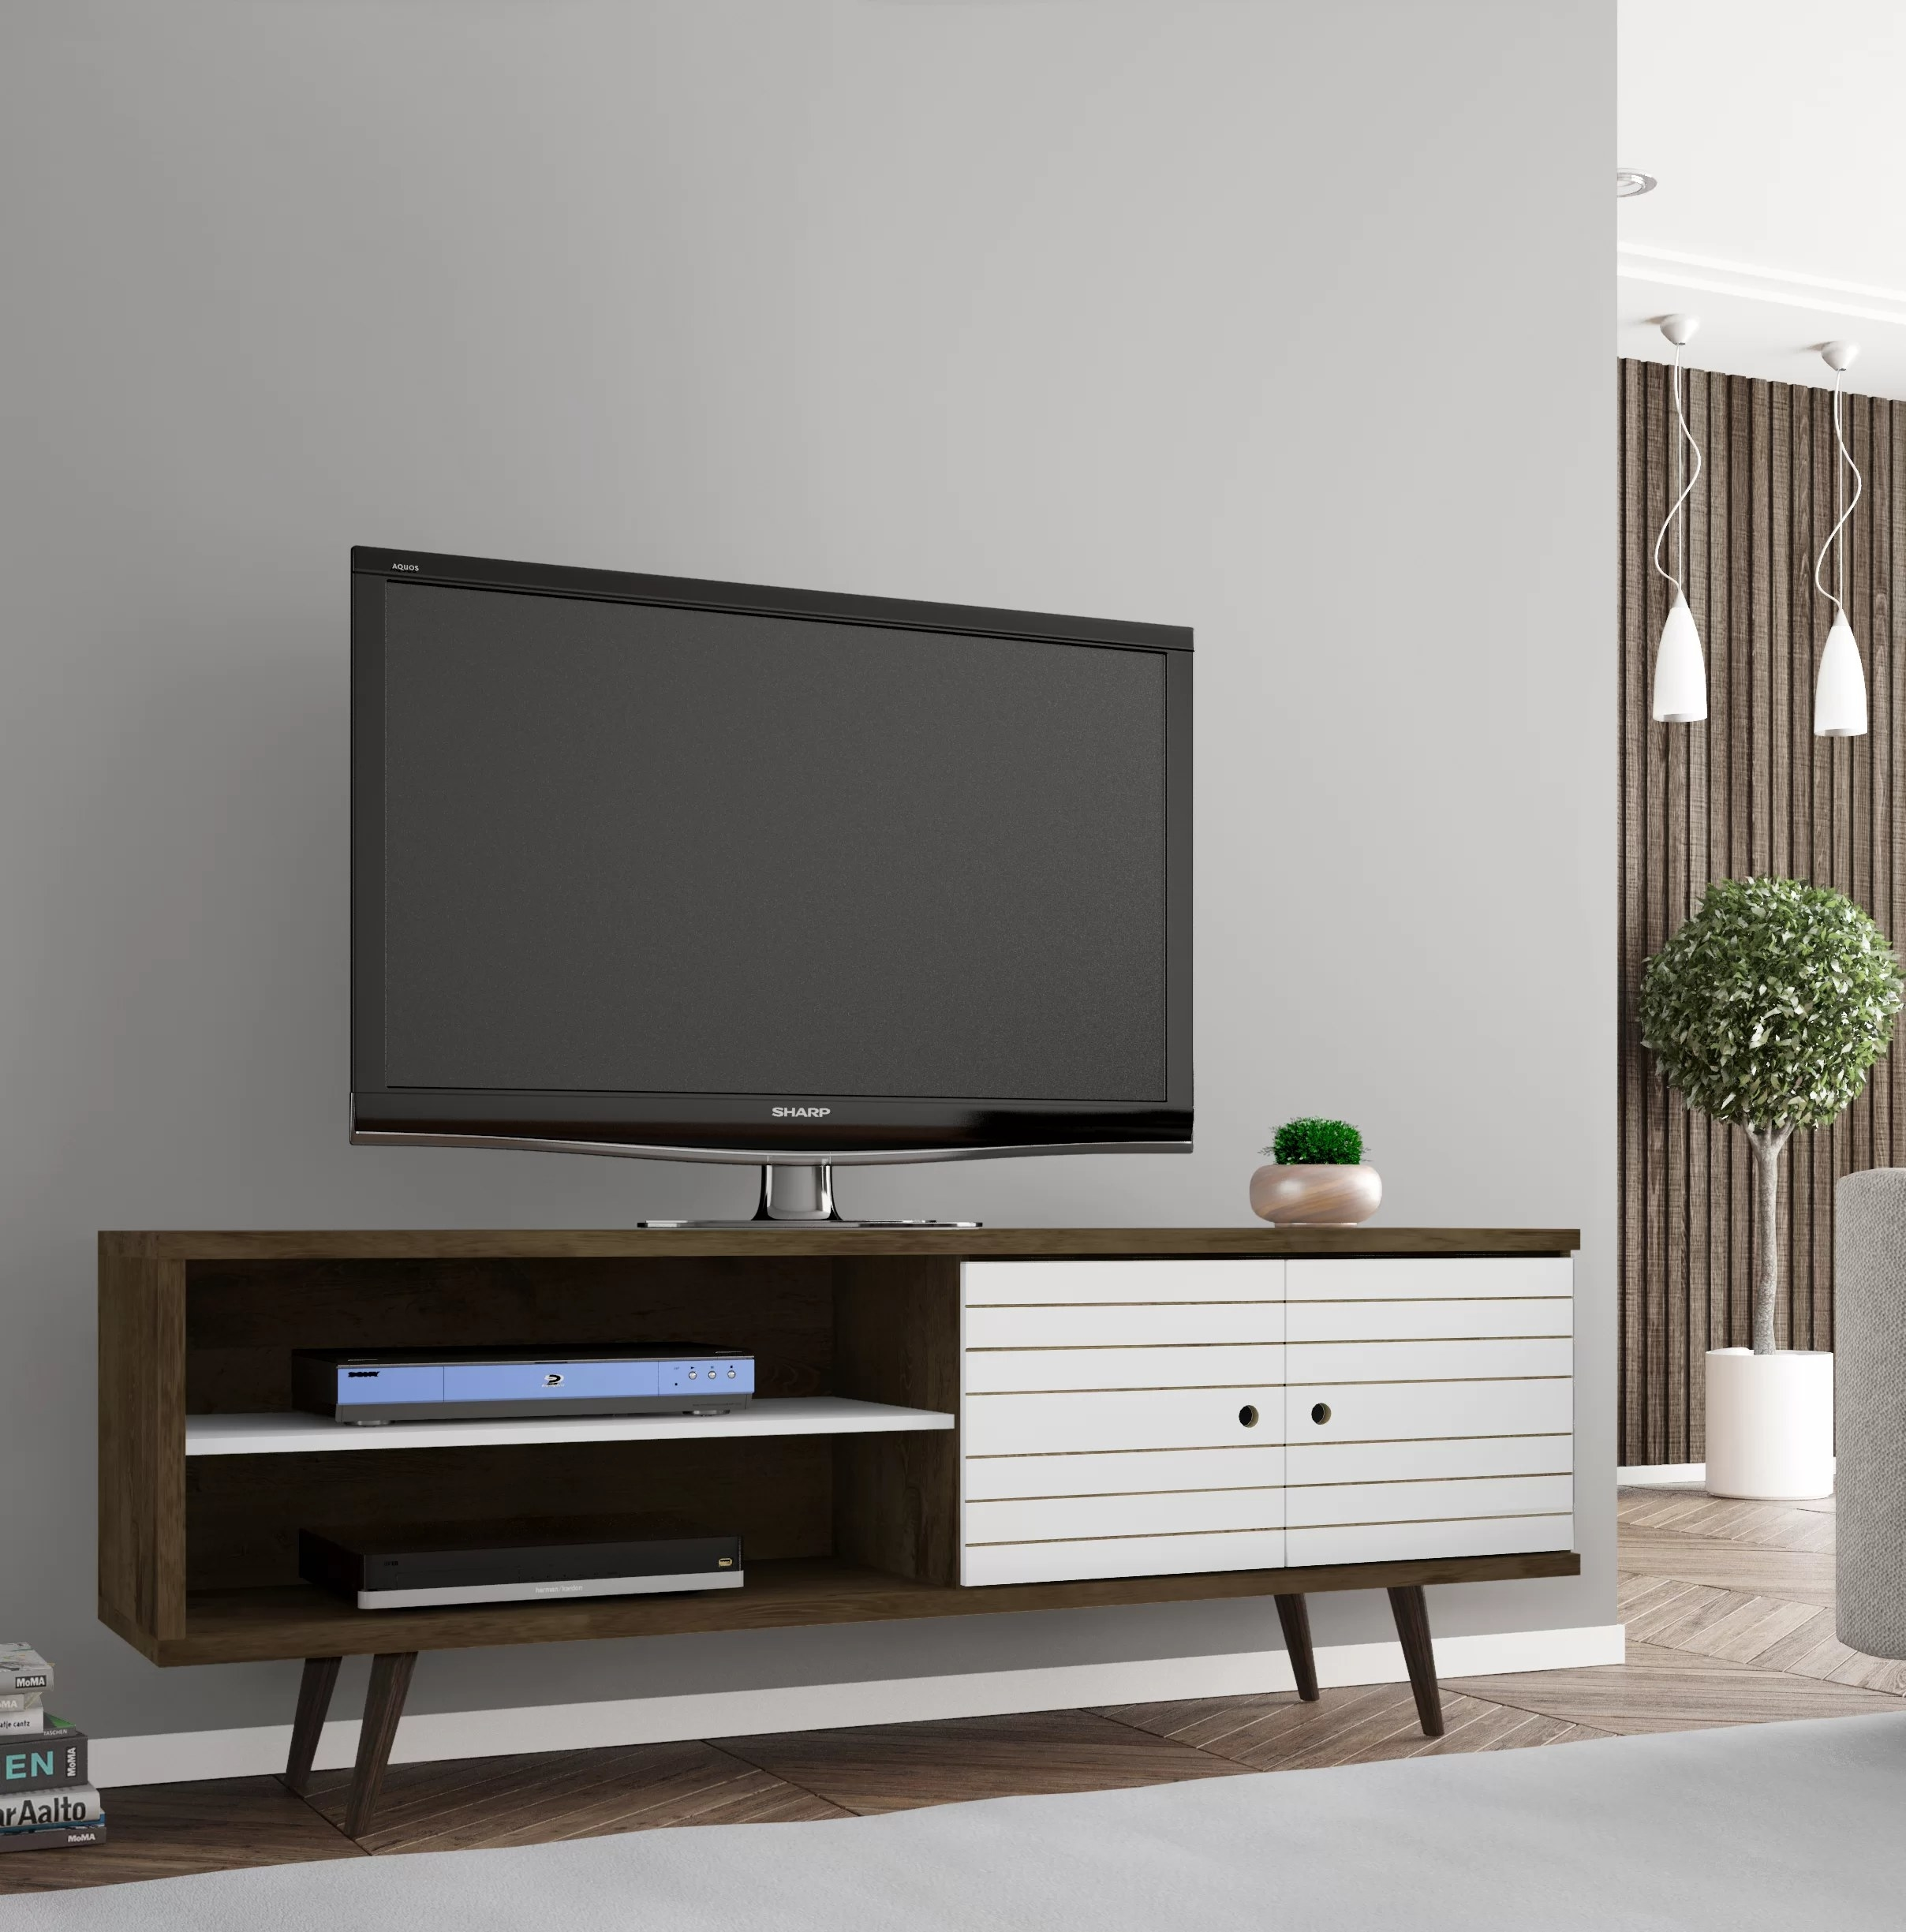 The wood TV stand with flared legs supporting a TV in a living room